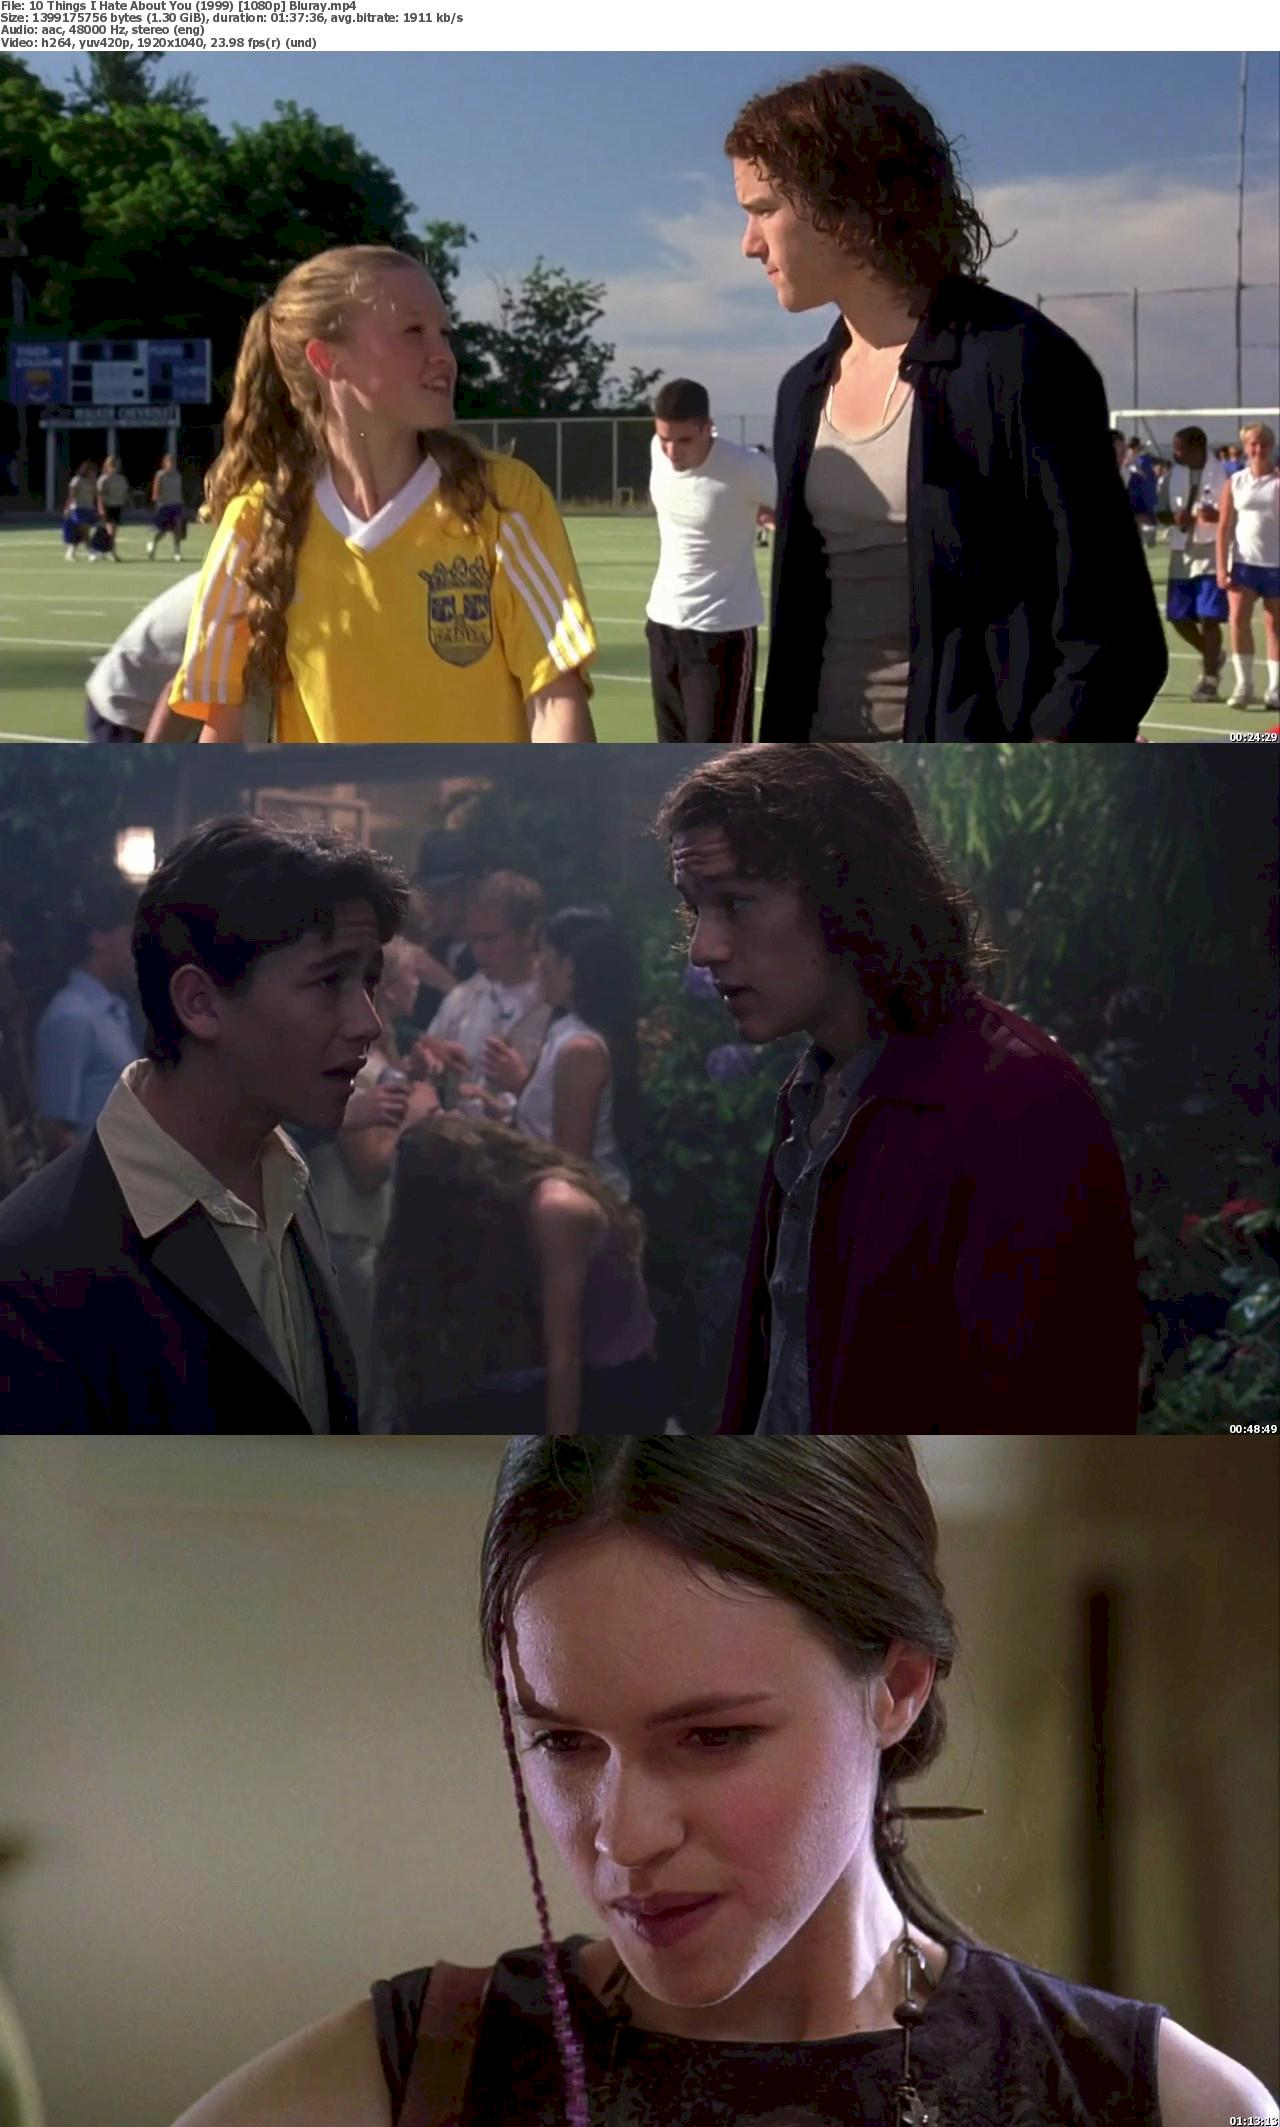 10 Things I Hate About You (1999) 1080p Bluray Free Download 1080p Screenshot